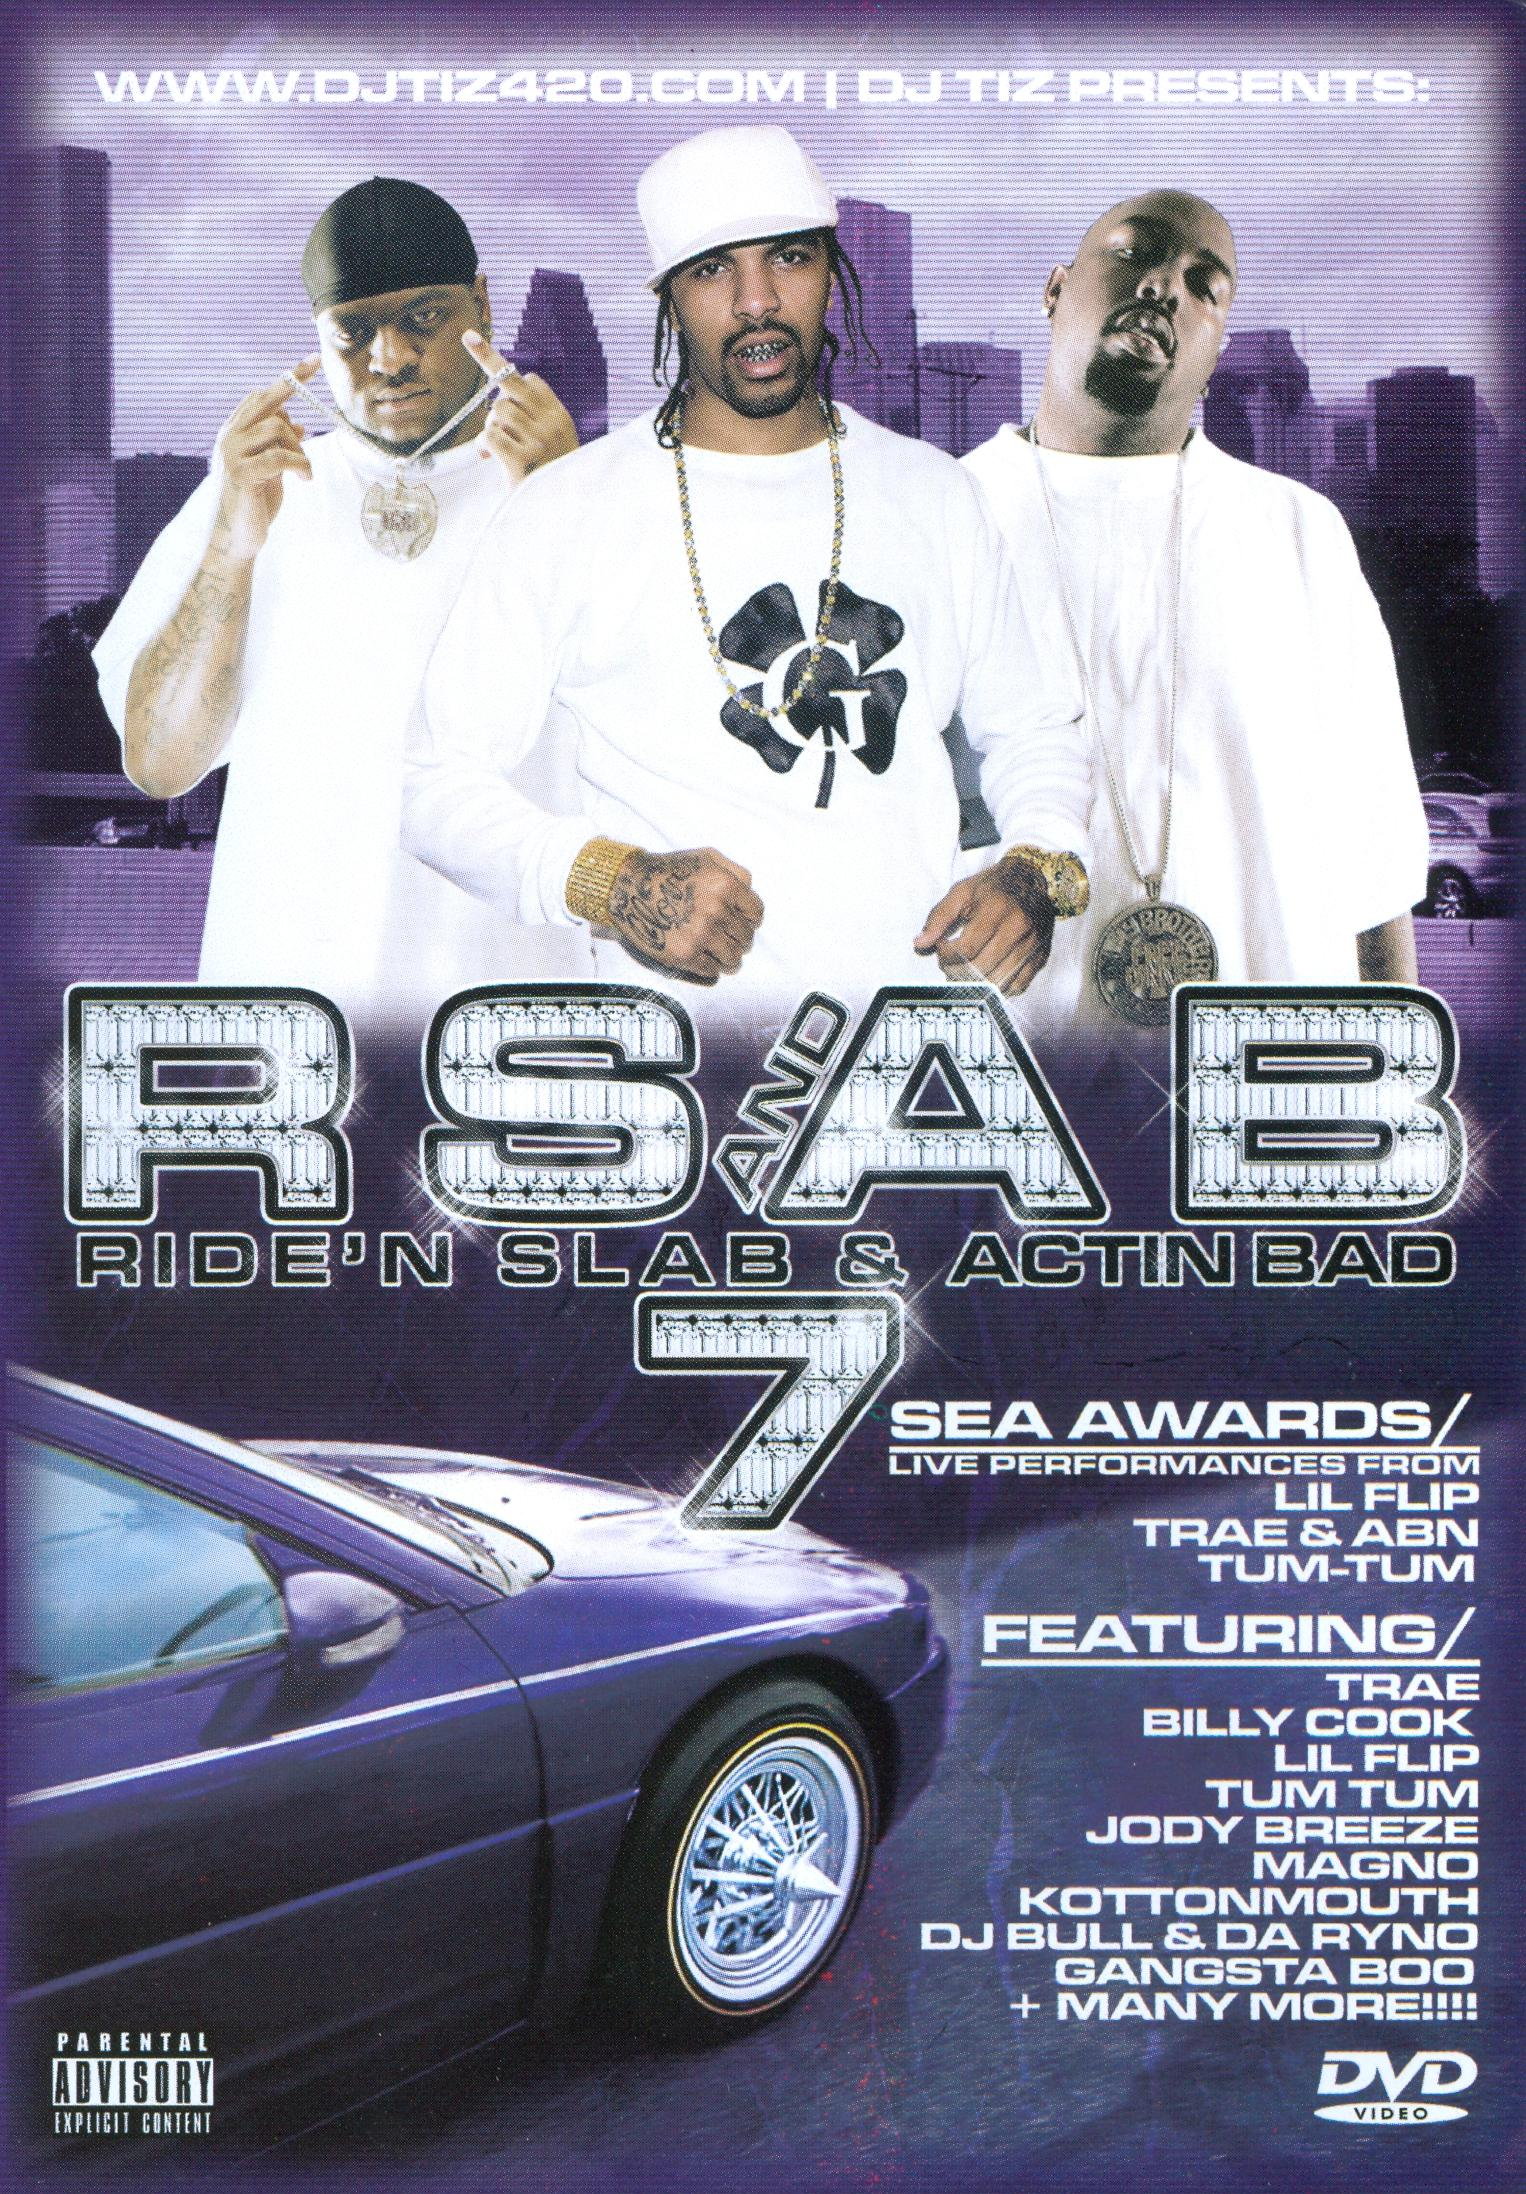 RS and AB: Ride'n' Slab and Actin Bad 7 (2008)